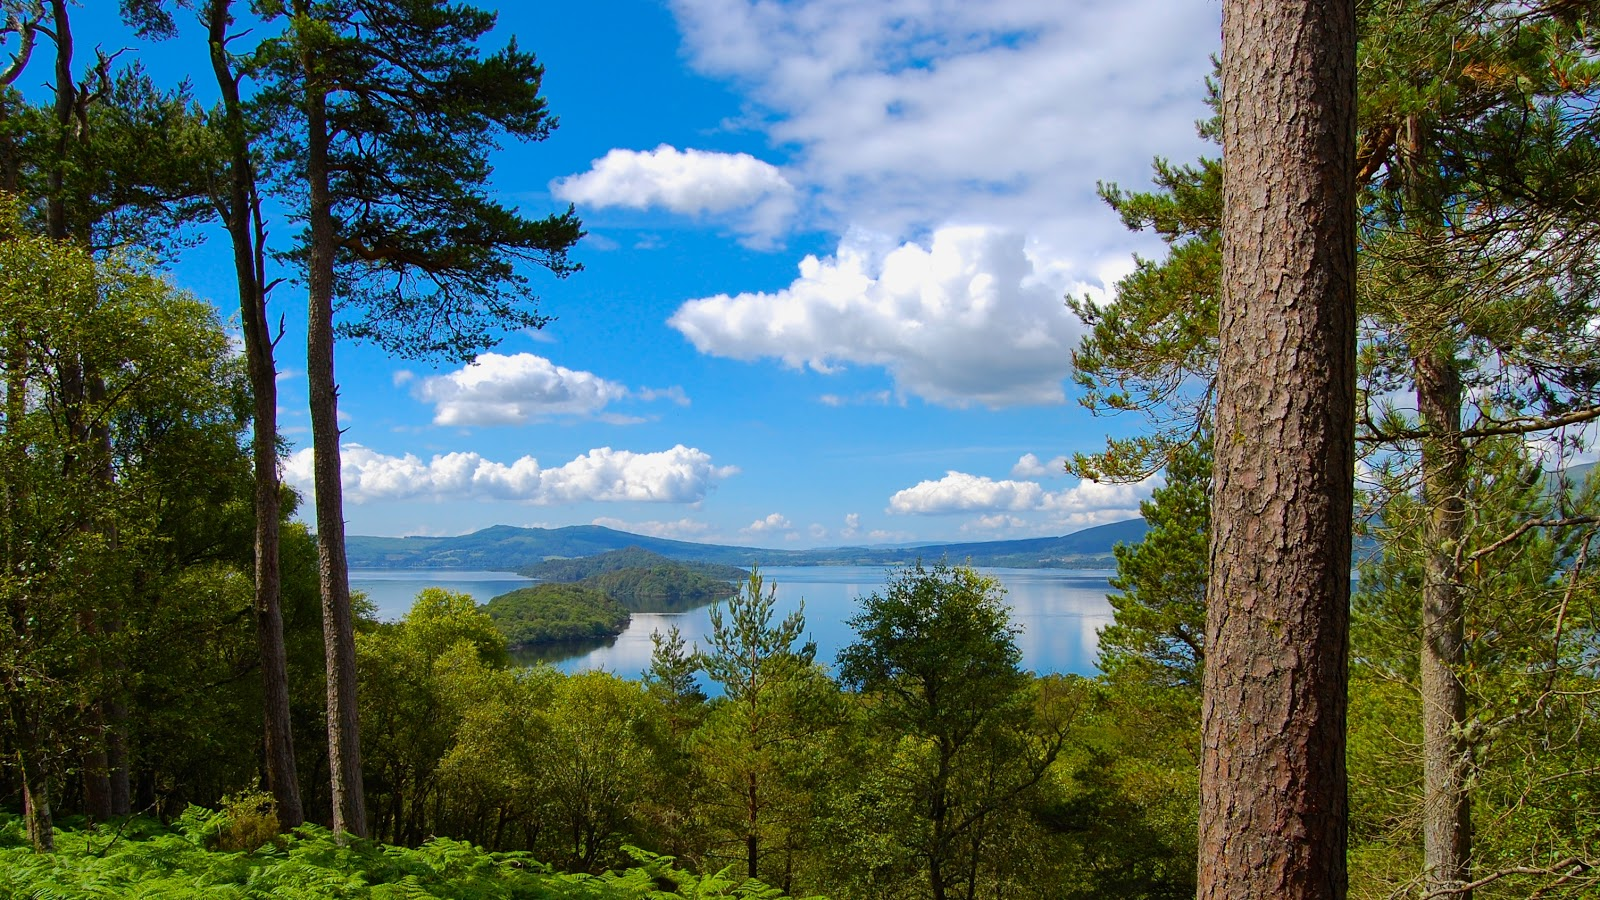 View of Loch Lomond from the island of Inchcailloch